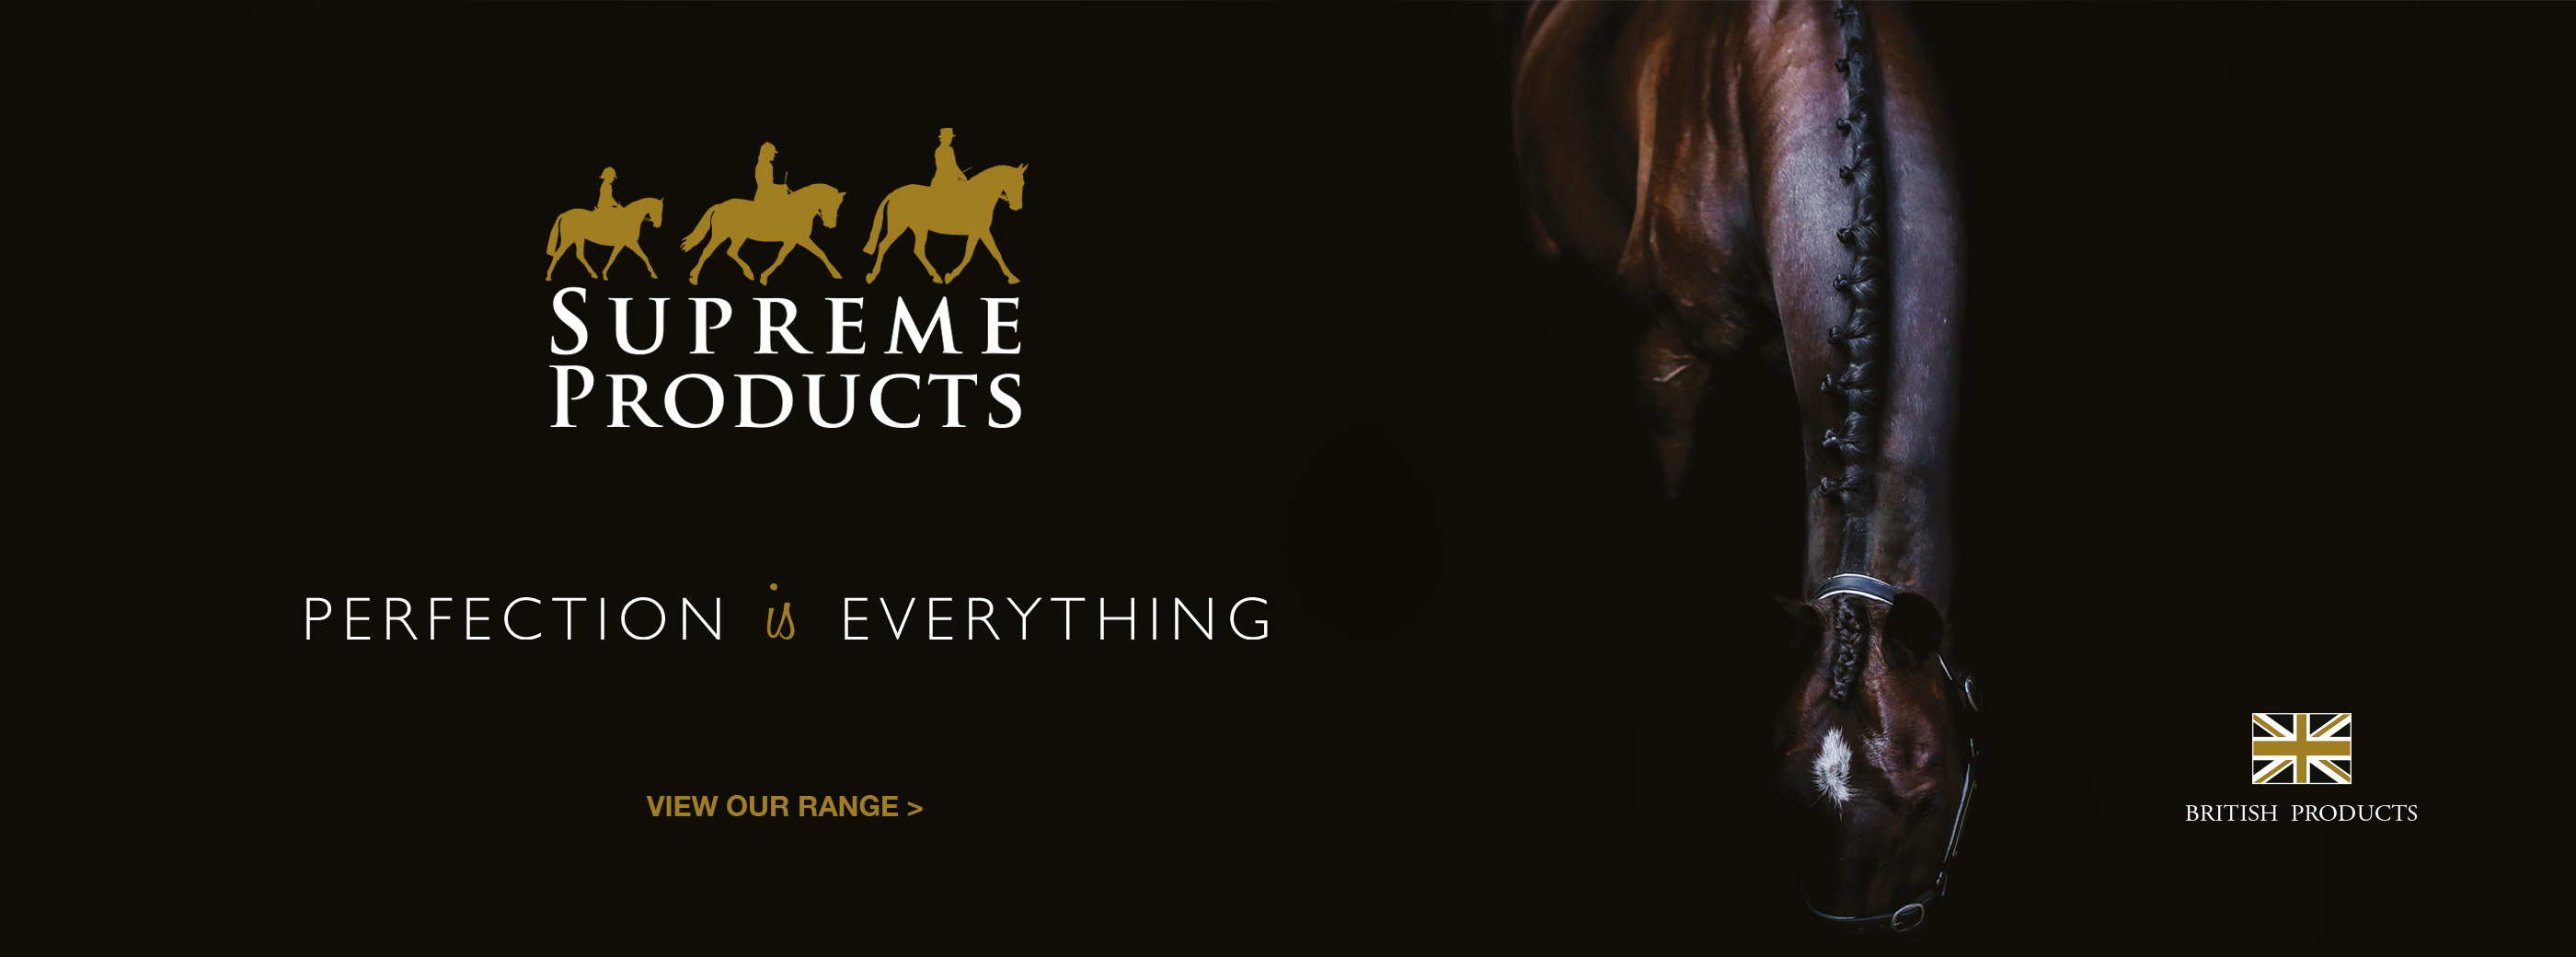 April 2019 - Supreme Products Banner